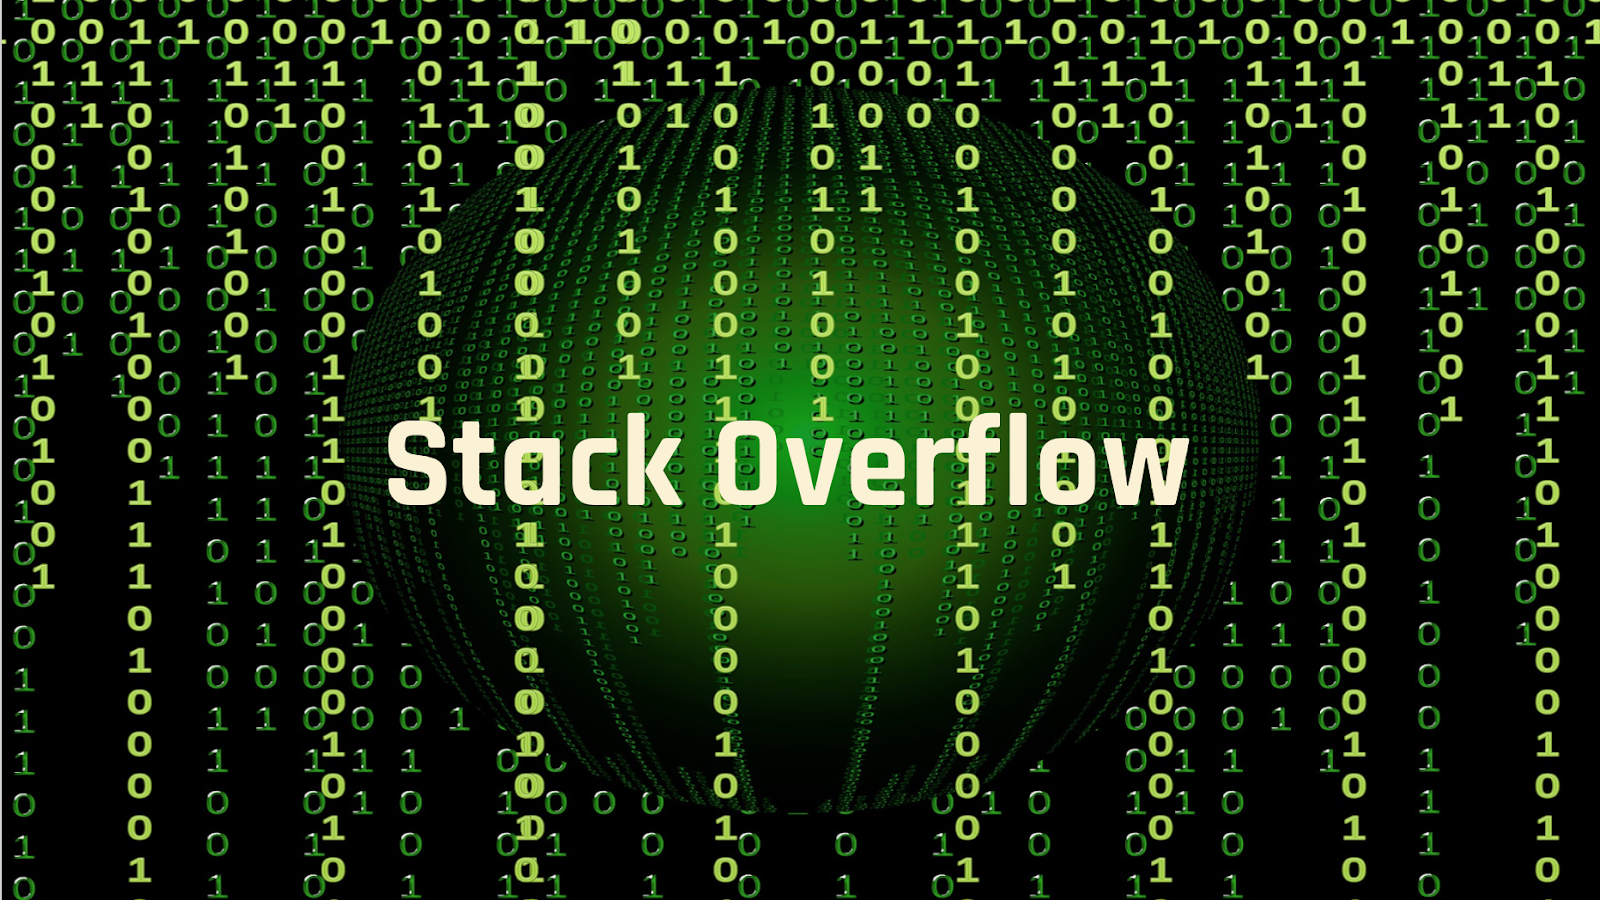 The Stack Overflow logo on a computer screen green background with ones and zeroes cascading behind it as in the Matrix.